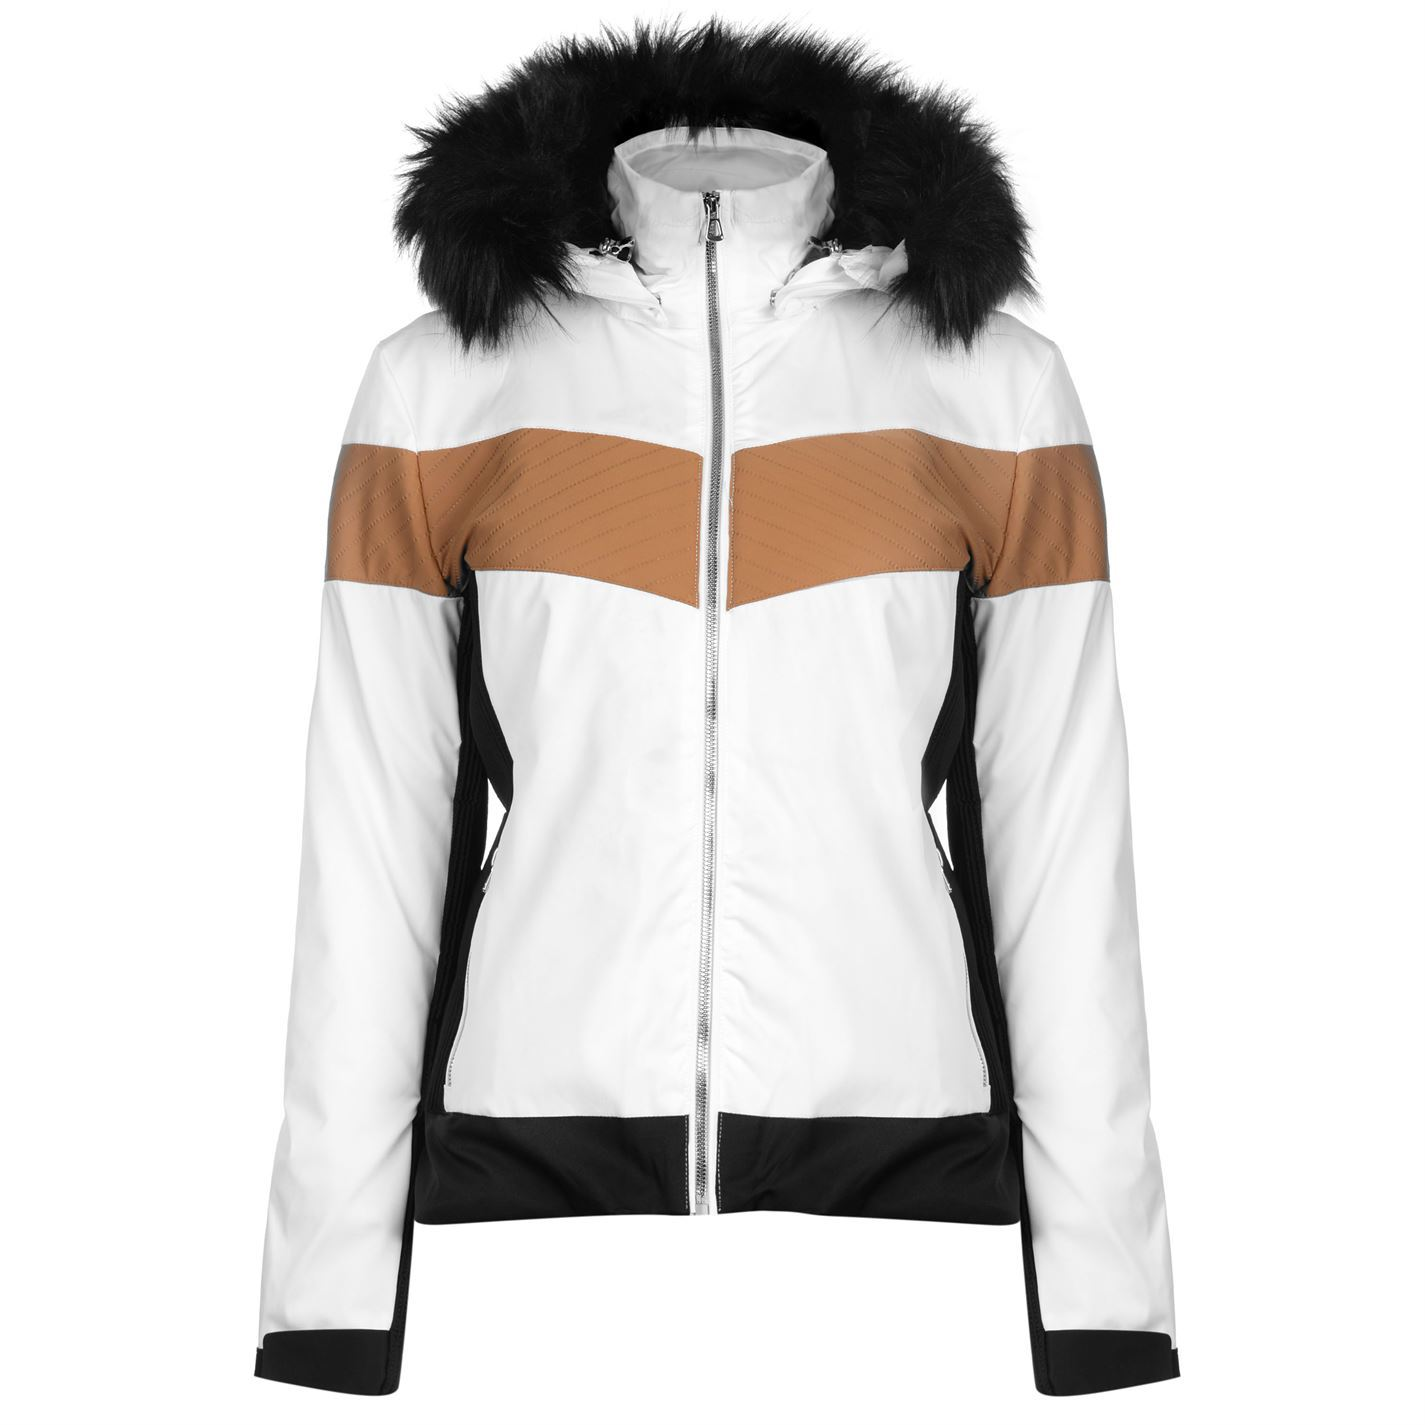 9f3b132bd6 Take the slopes in style with this Ladies Nevica Banff Ski Jacket which has  been integrated with elasticated panelling to promote freedom of movement